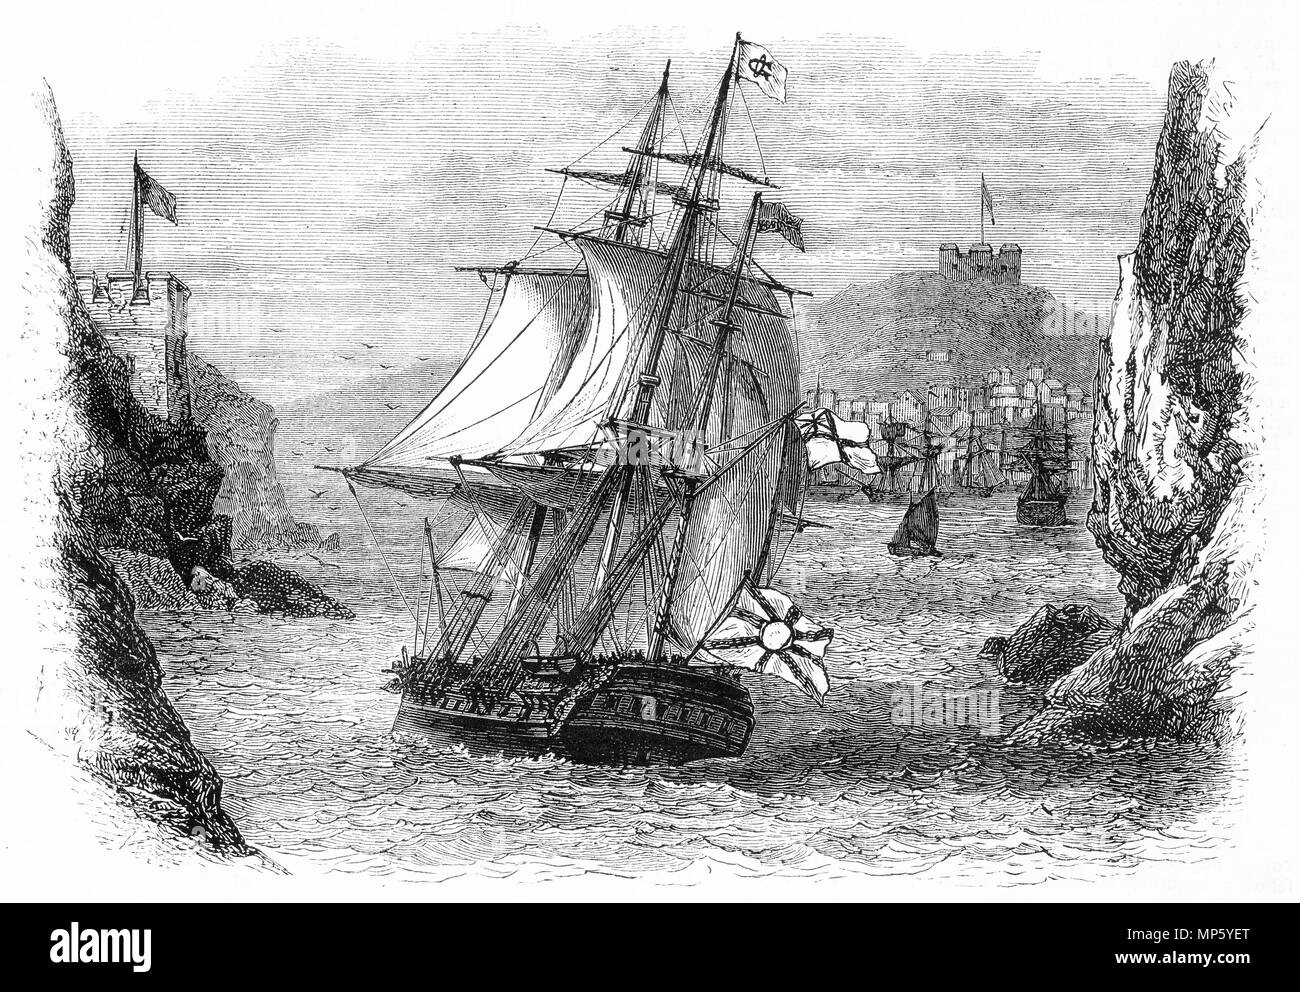 Engraving of a sailing ship making its way into harbour. From an original engraving in the Girl's Own Paper magazine 1883. - Stock Image